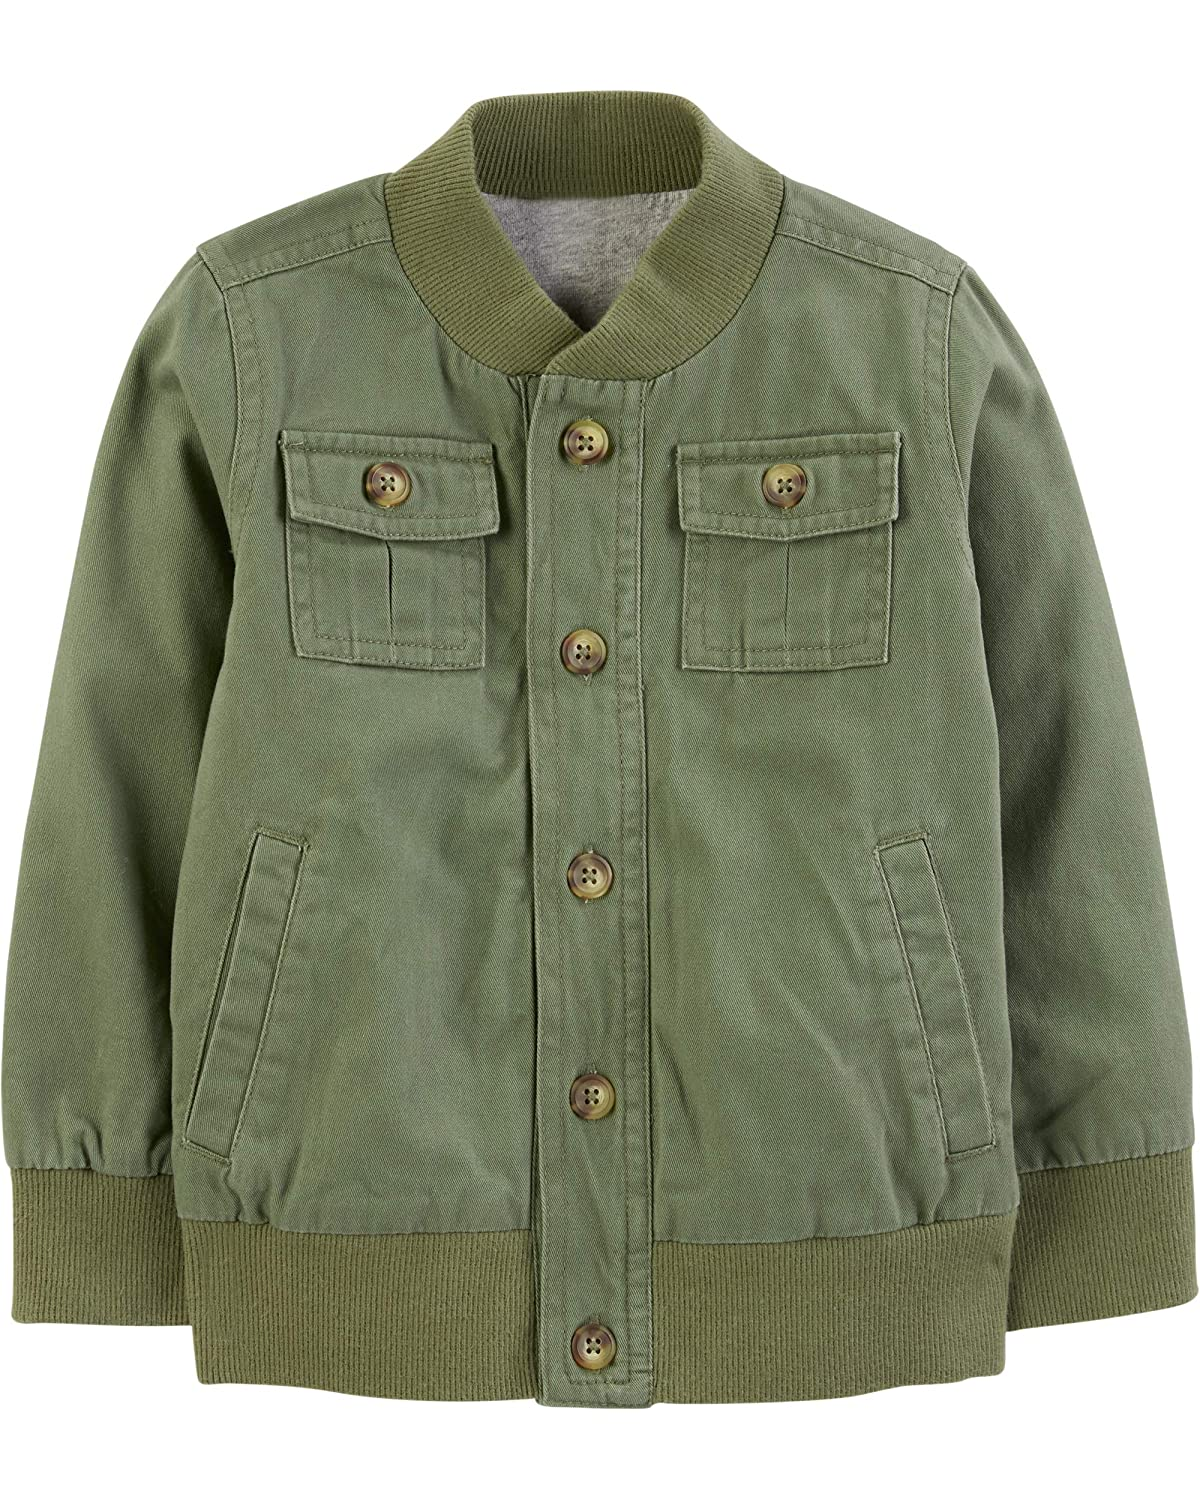 Simple Joys by Carters Baby and Toddler Boys Twill Button up Jacket